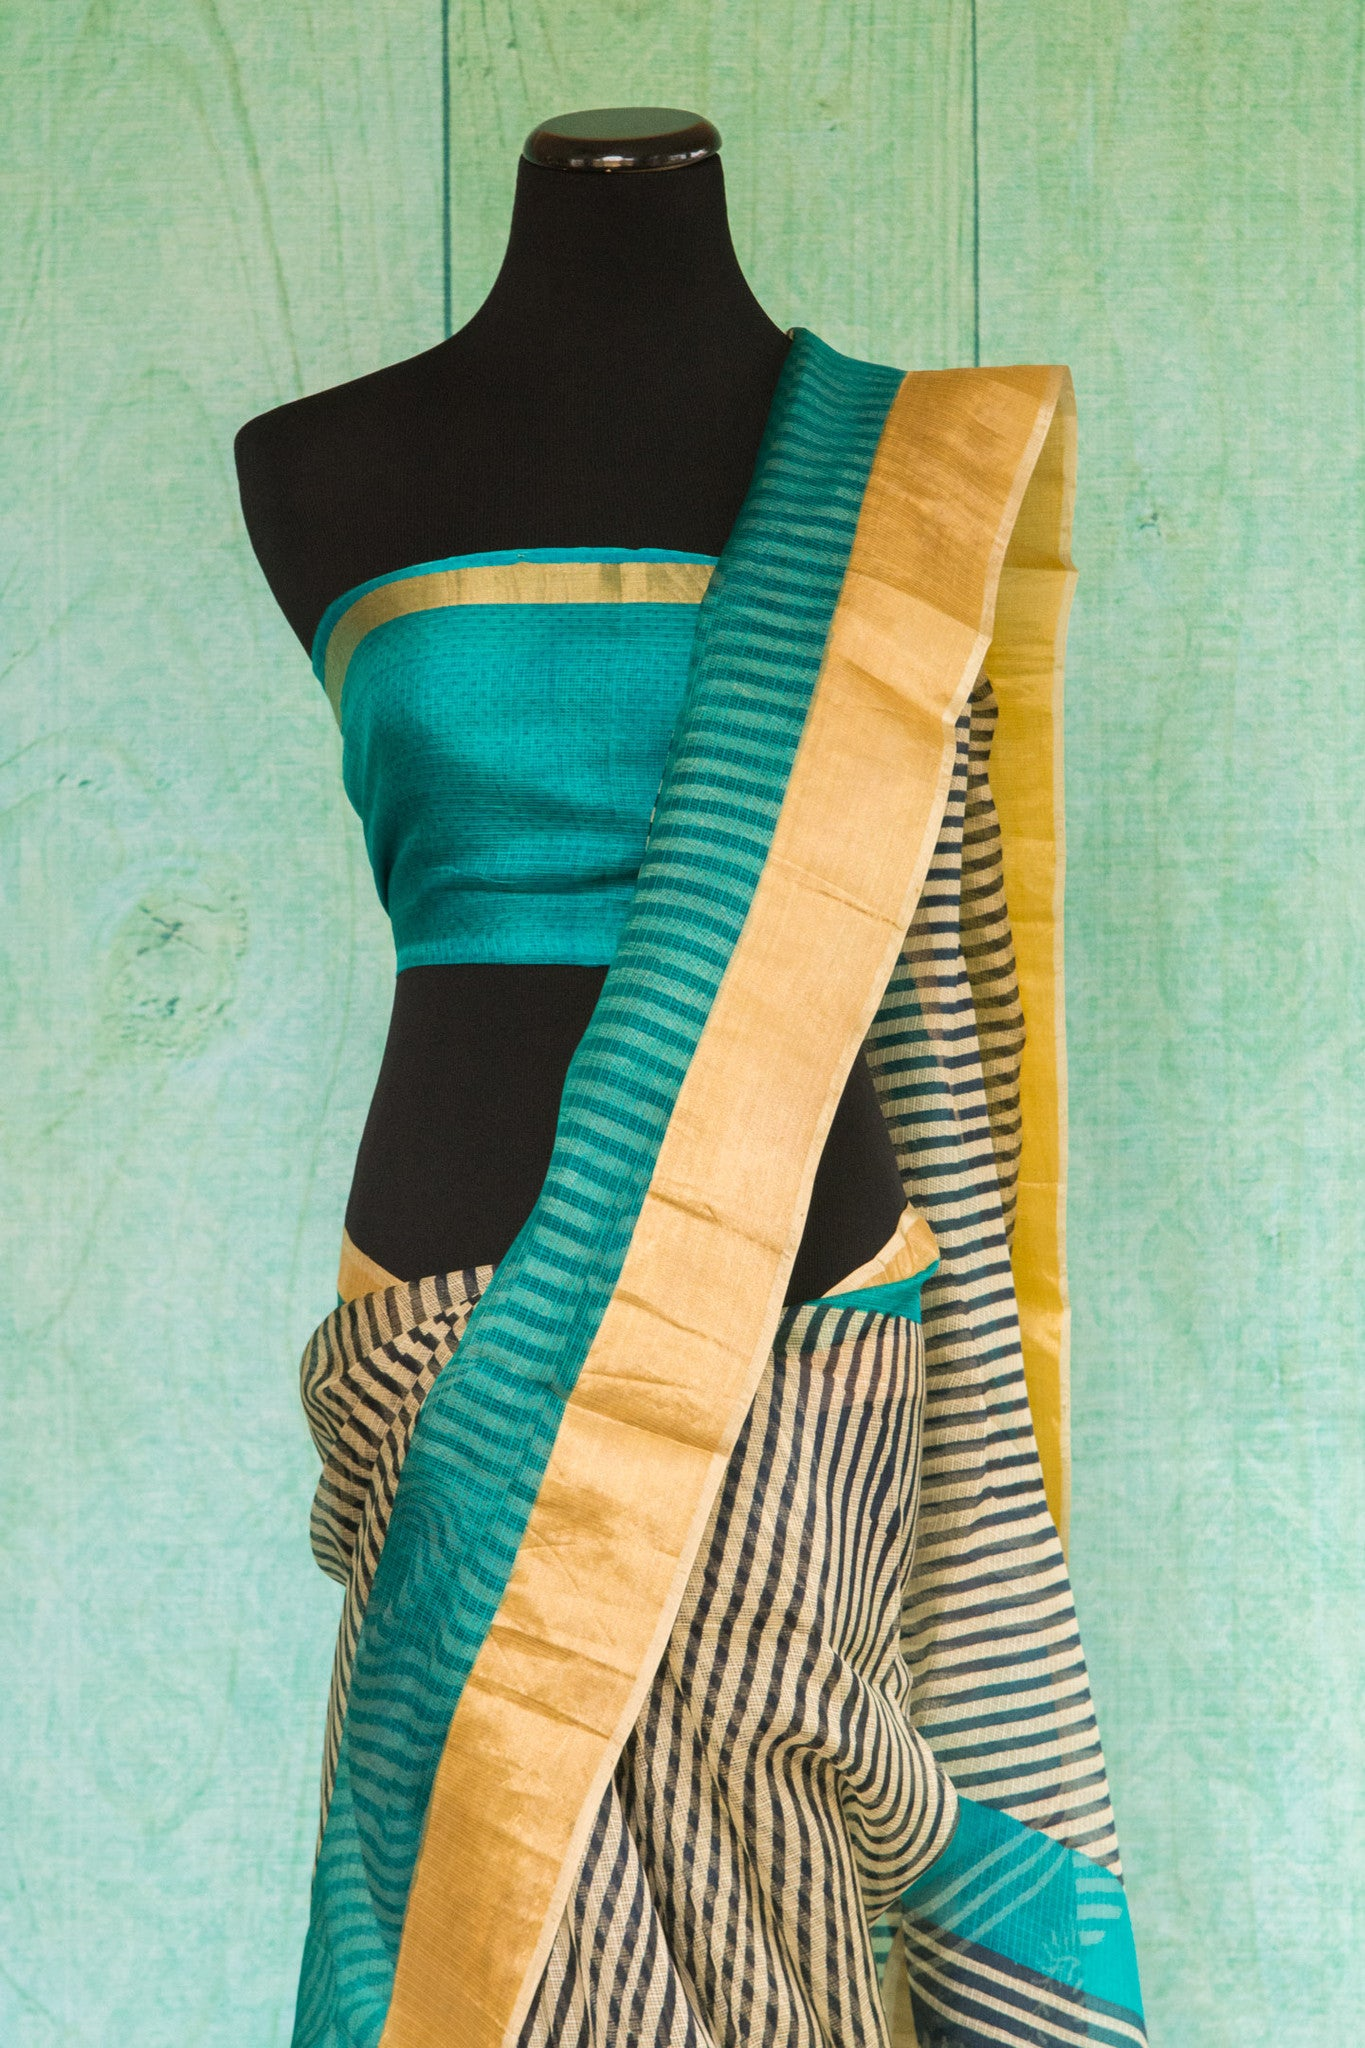 90c085 Black and cream striped zari kota saree with pops of blue and golden. This printed party wear saree can be bought at Pure Elegance - our Indian clothing store online in USA. The beautiful sari is sure to flutter hearts!